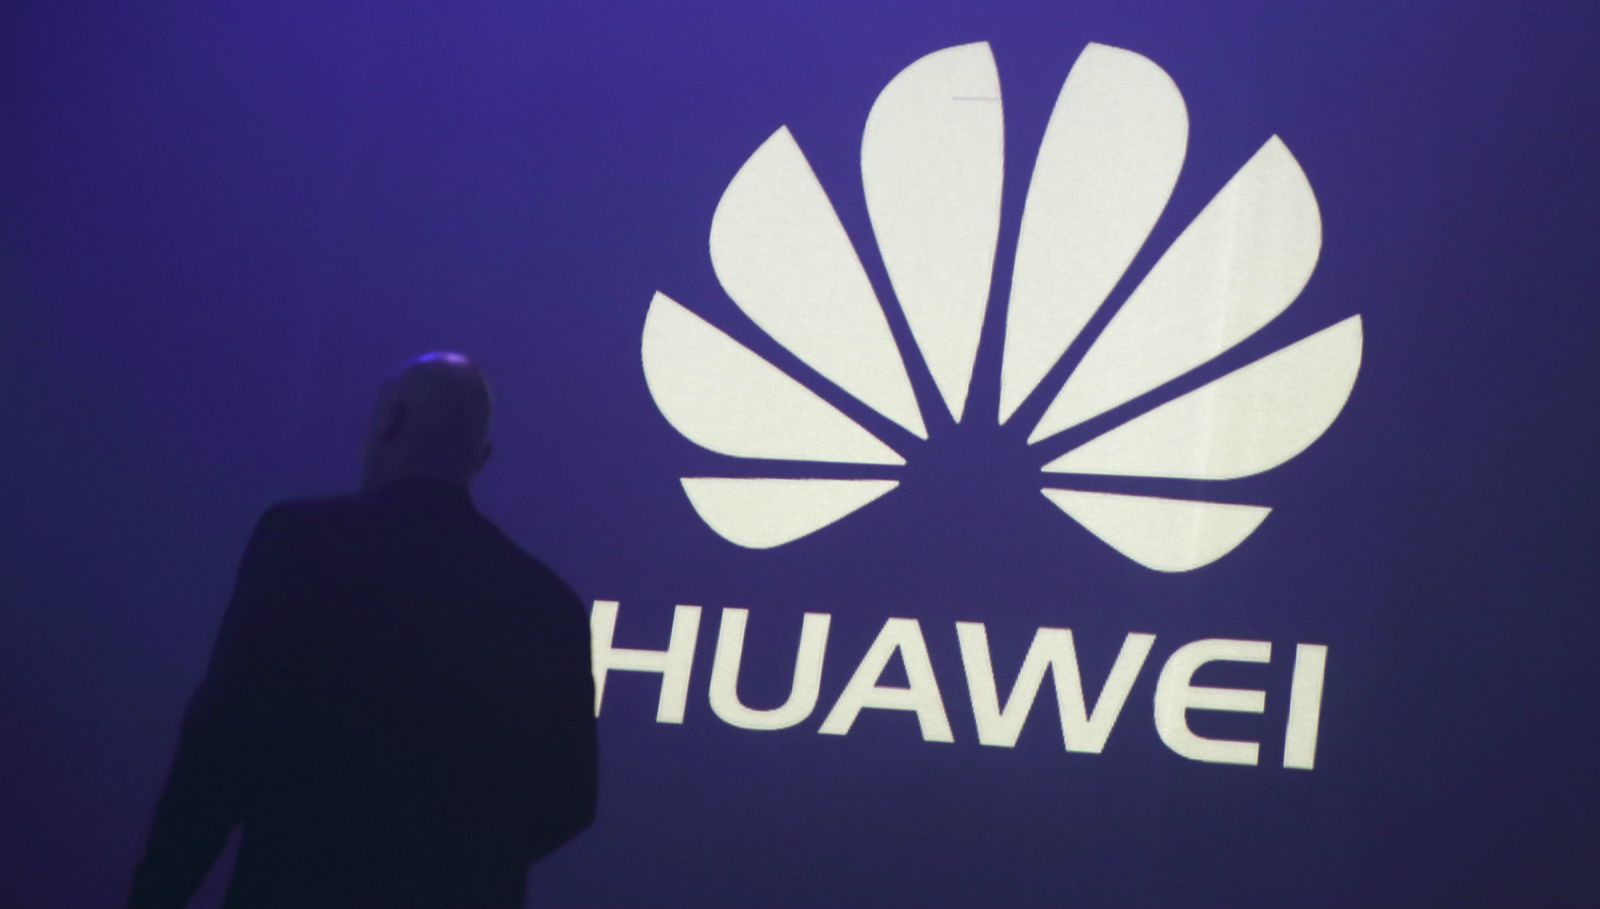 Huawei acquires Israel cyber security startup HexaTier for US$42 million